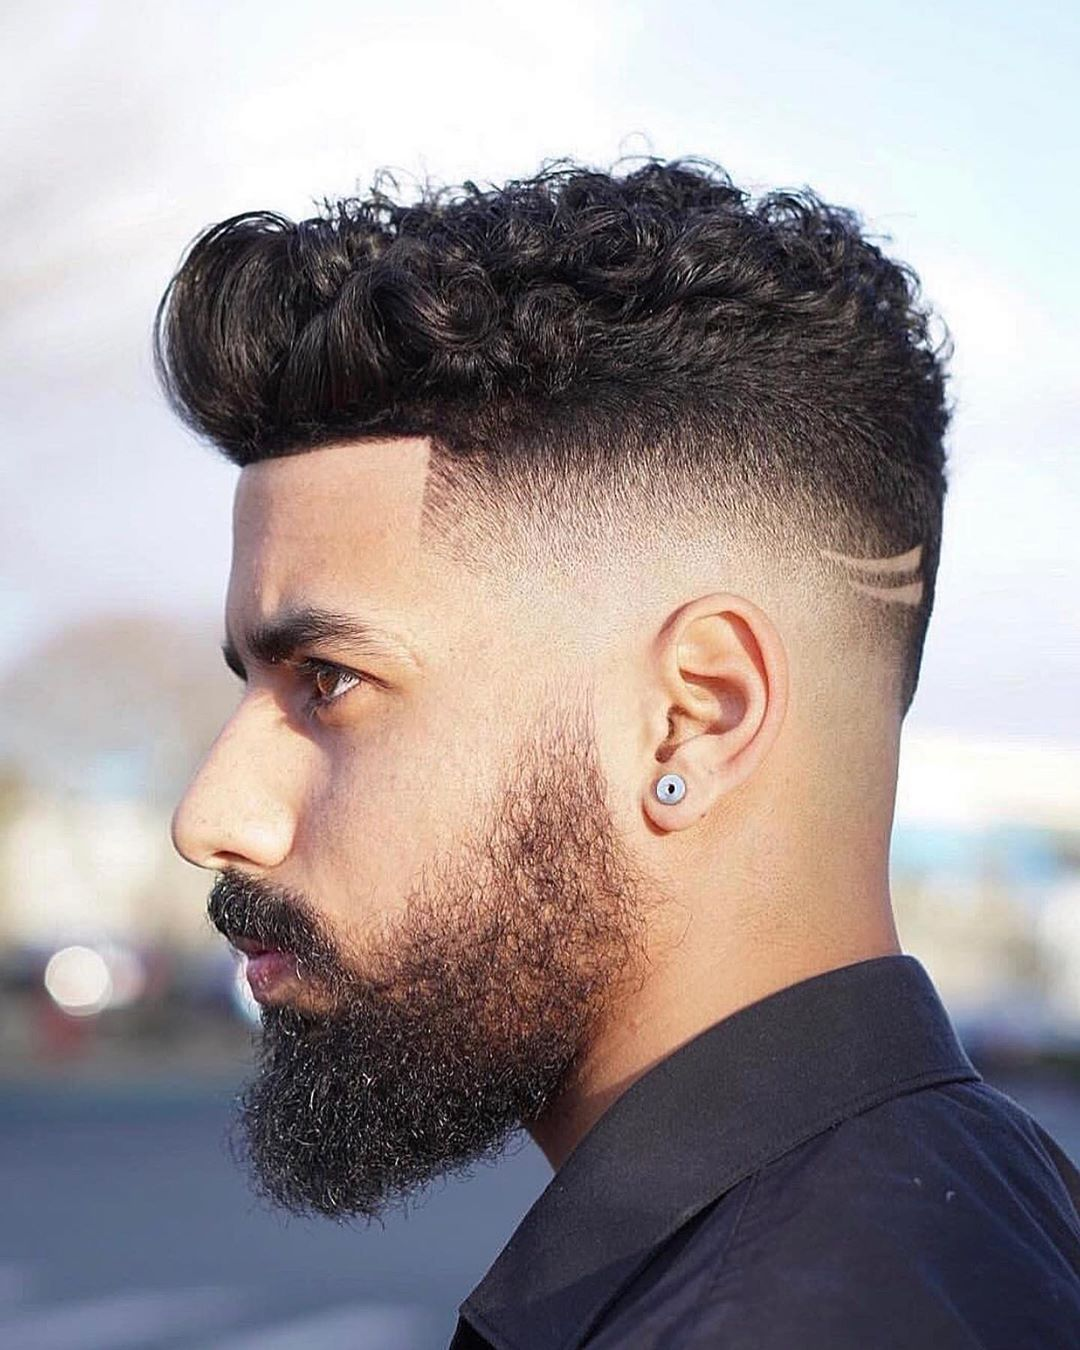 17 Best Short Hairstyles For Men 2020 The Indian Gent In 2020 High Fade Haircut Fade Haircut Curly Hair Men